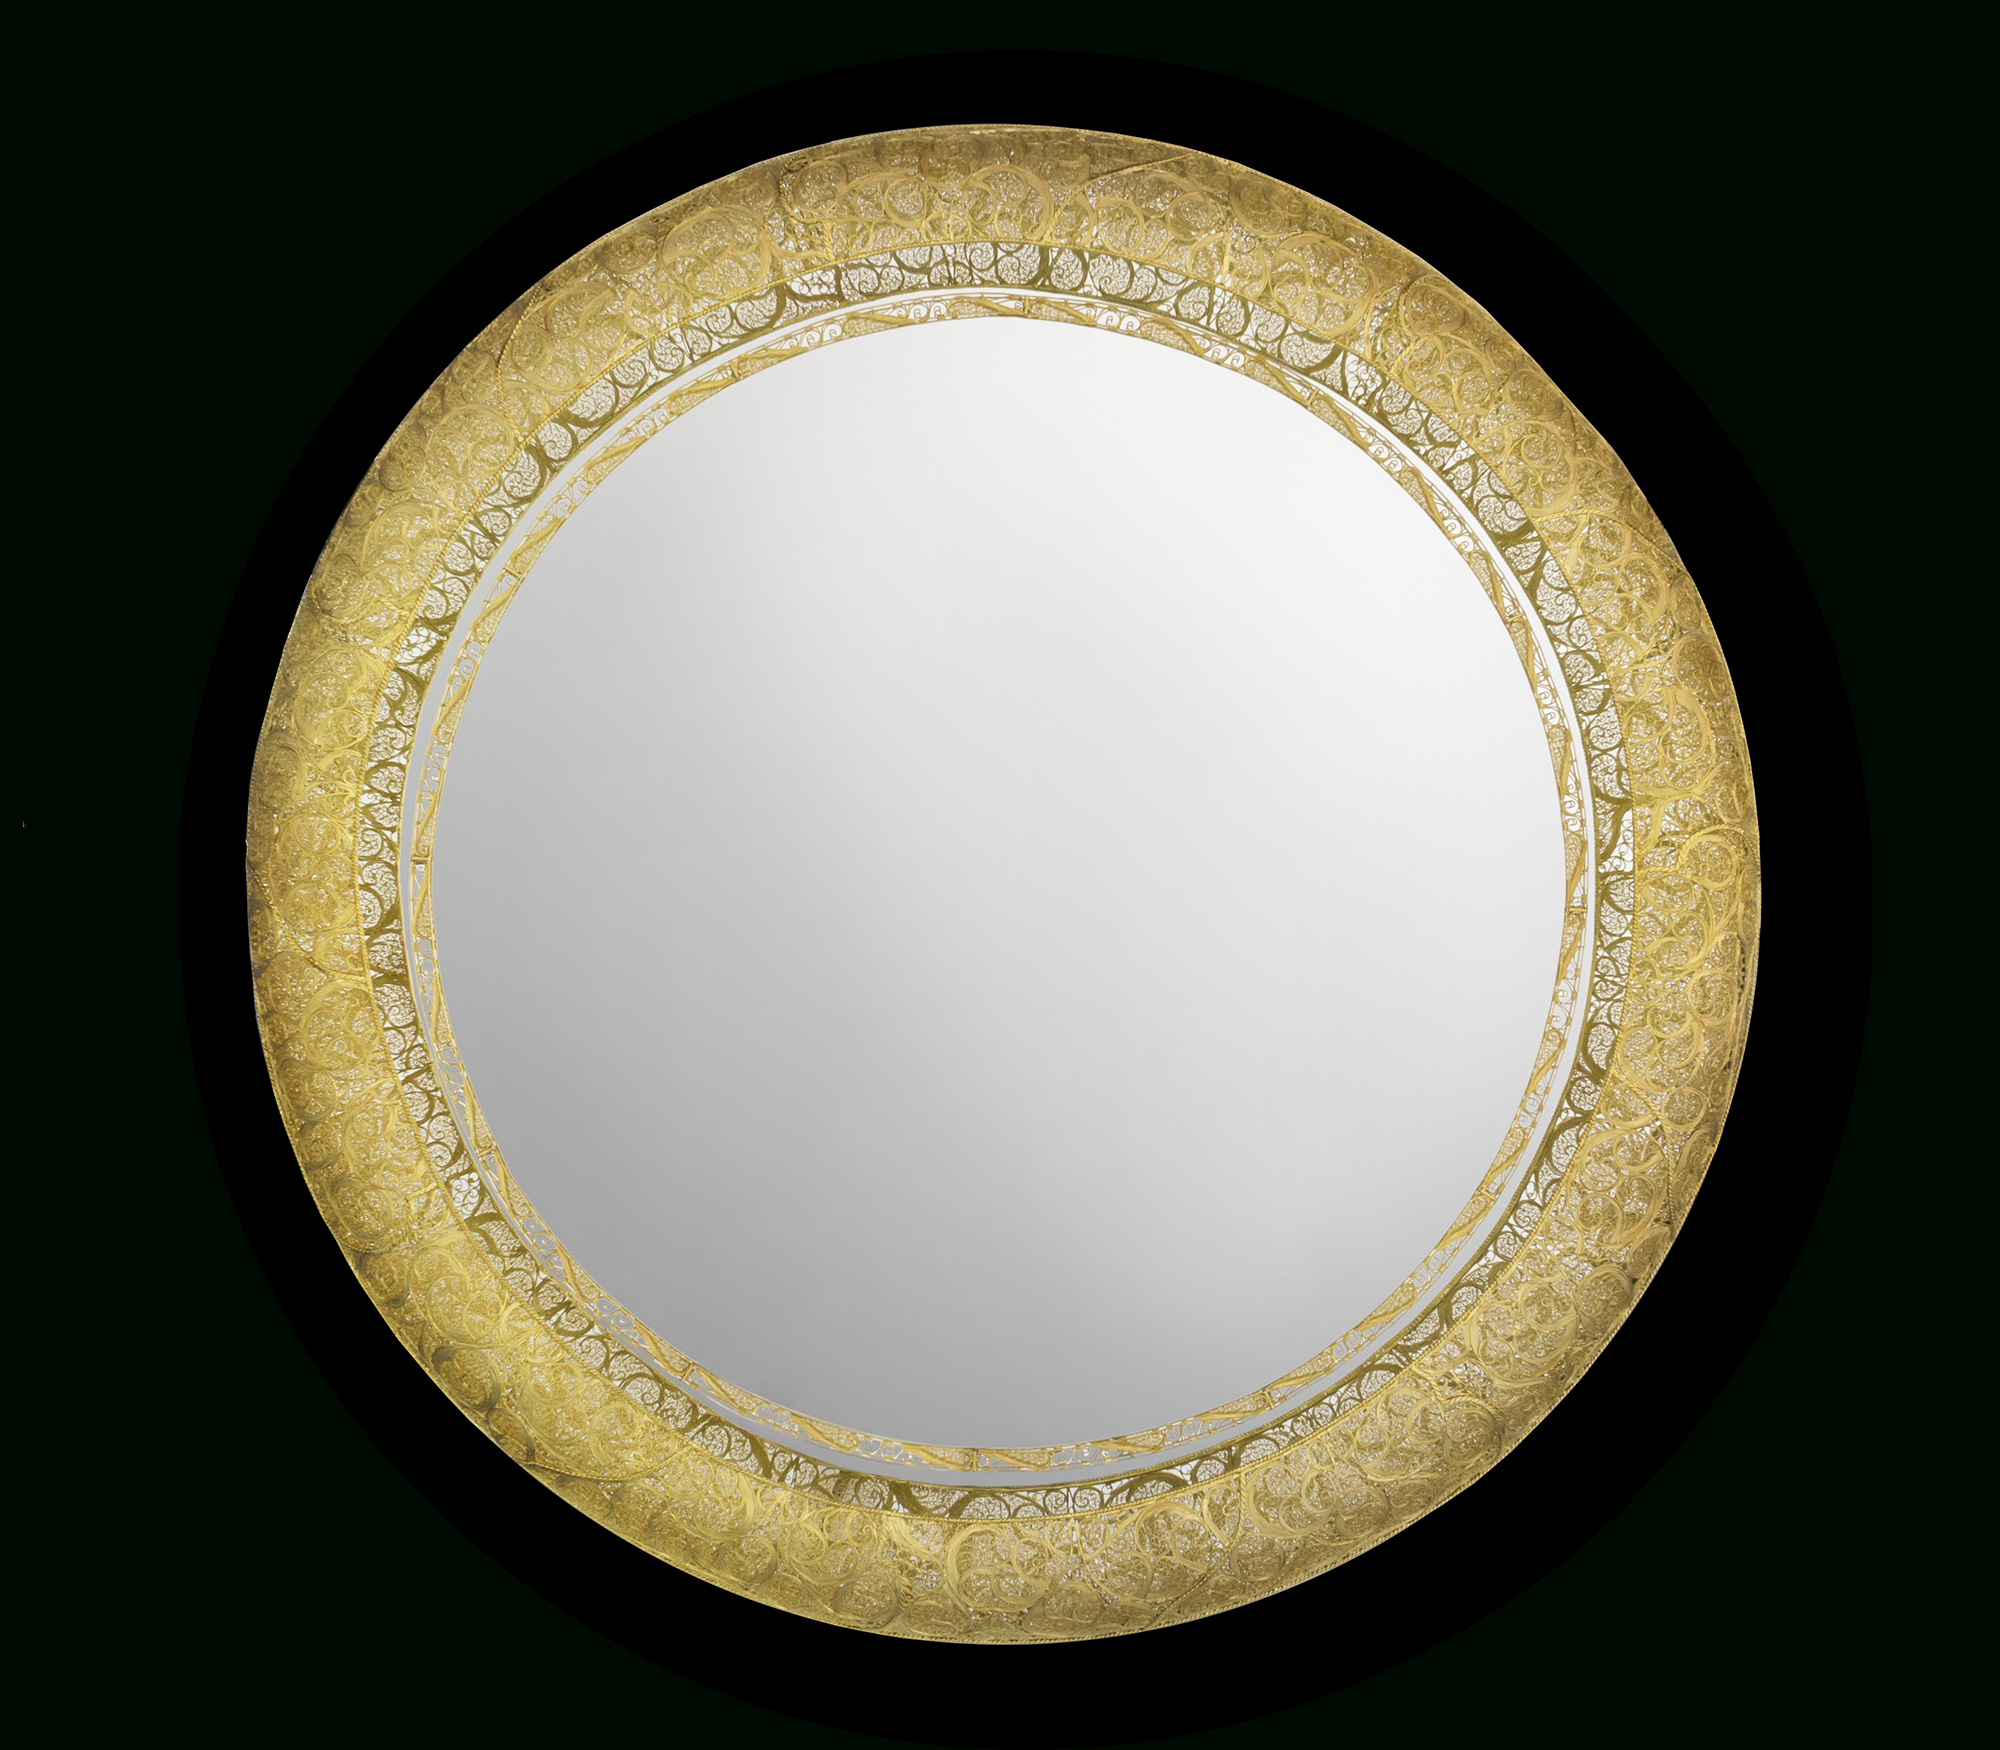 Ring Filigree Mirror   Boca Do Lobo Exclusive Design Intended For Polen Traditional Wall Mirrors (View 18 of 20)